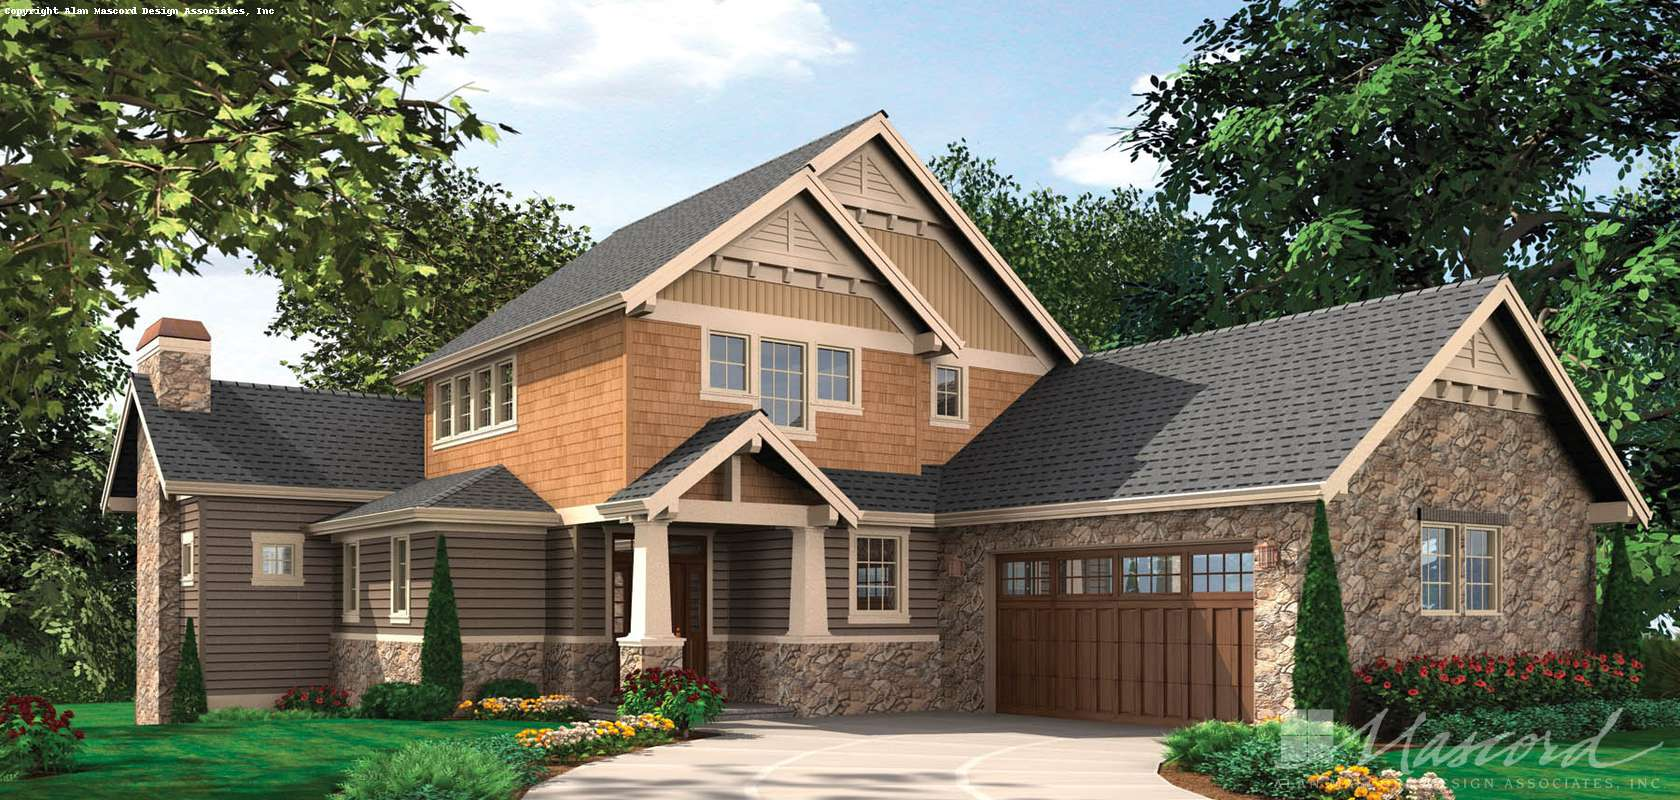 Mascord House Plan 2387: The Iverson